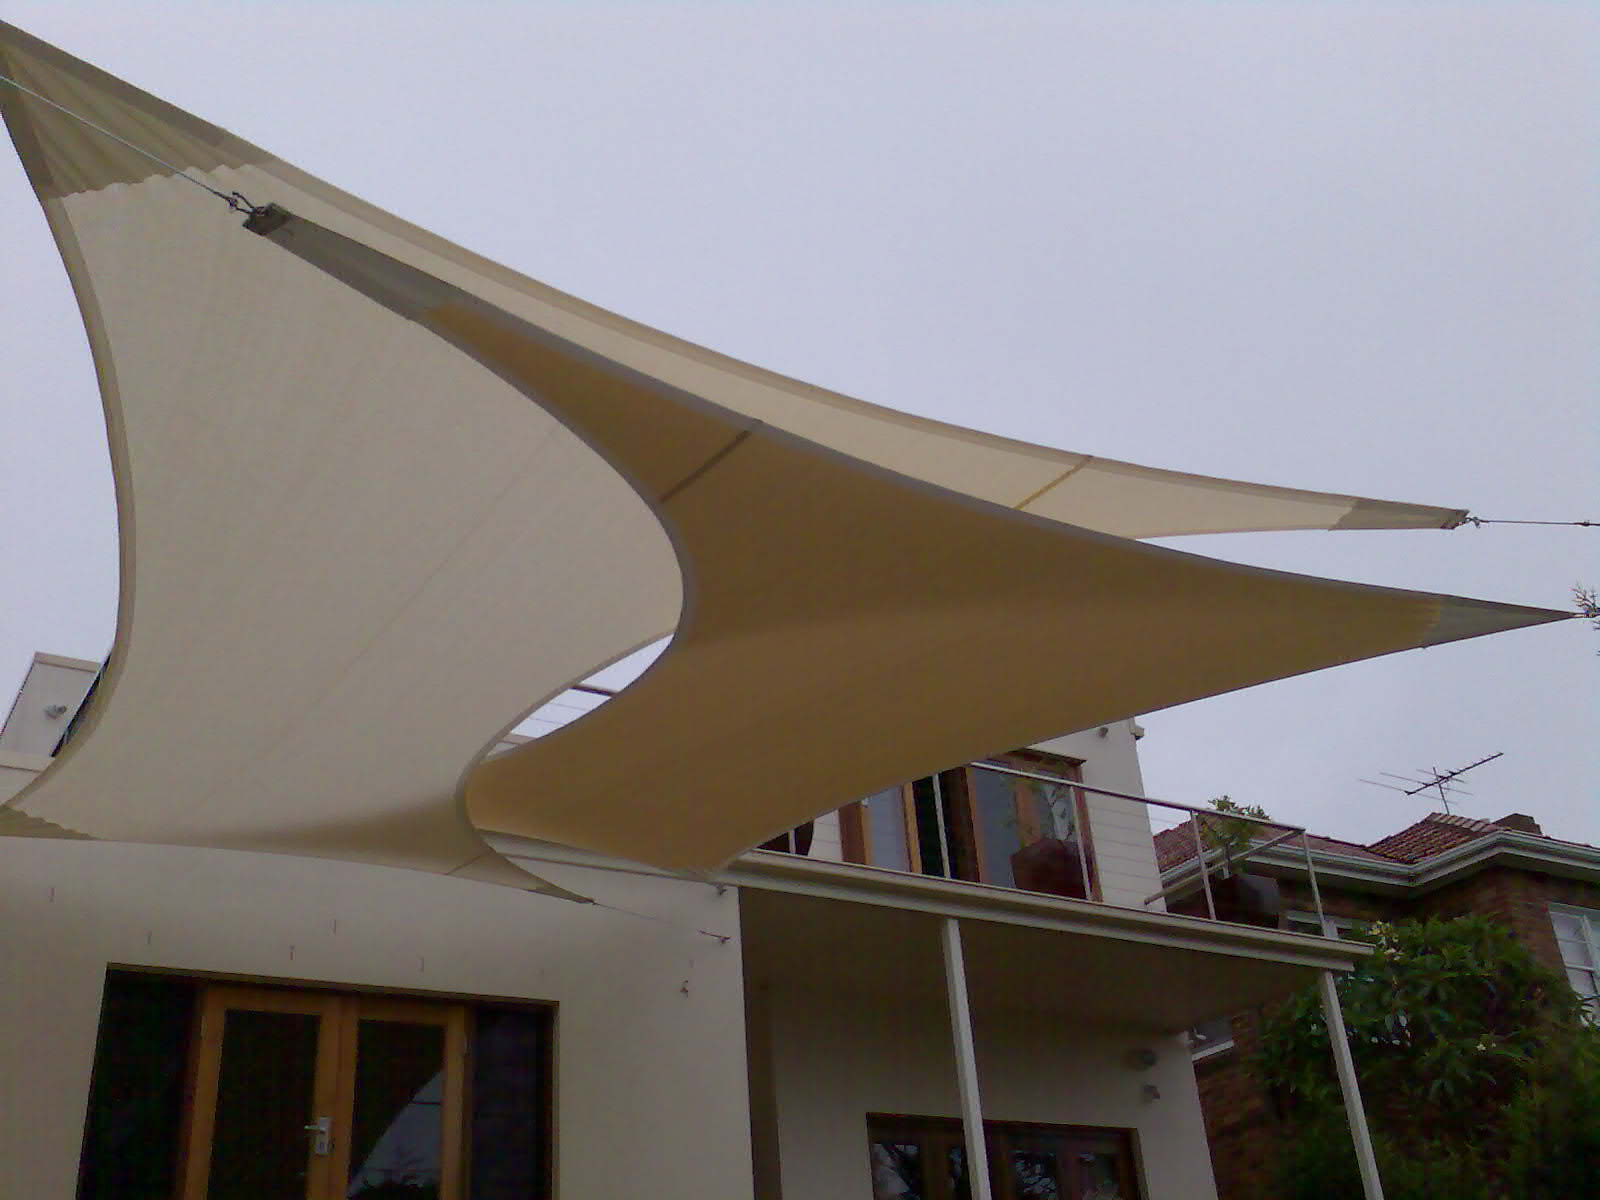 Backyard Awning Shade : United Arab Emirates Sun Shade , United Arab Emirates Sun Shade